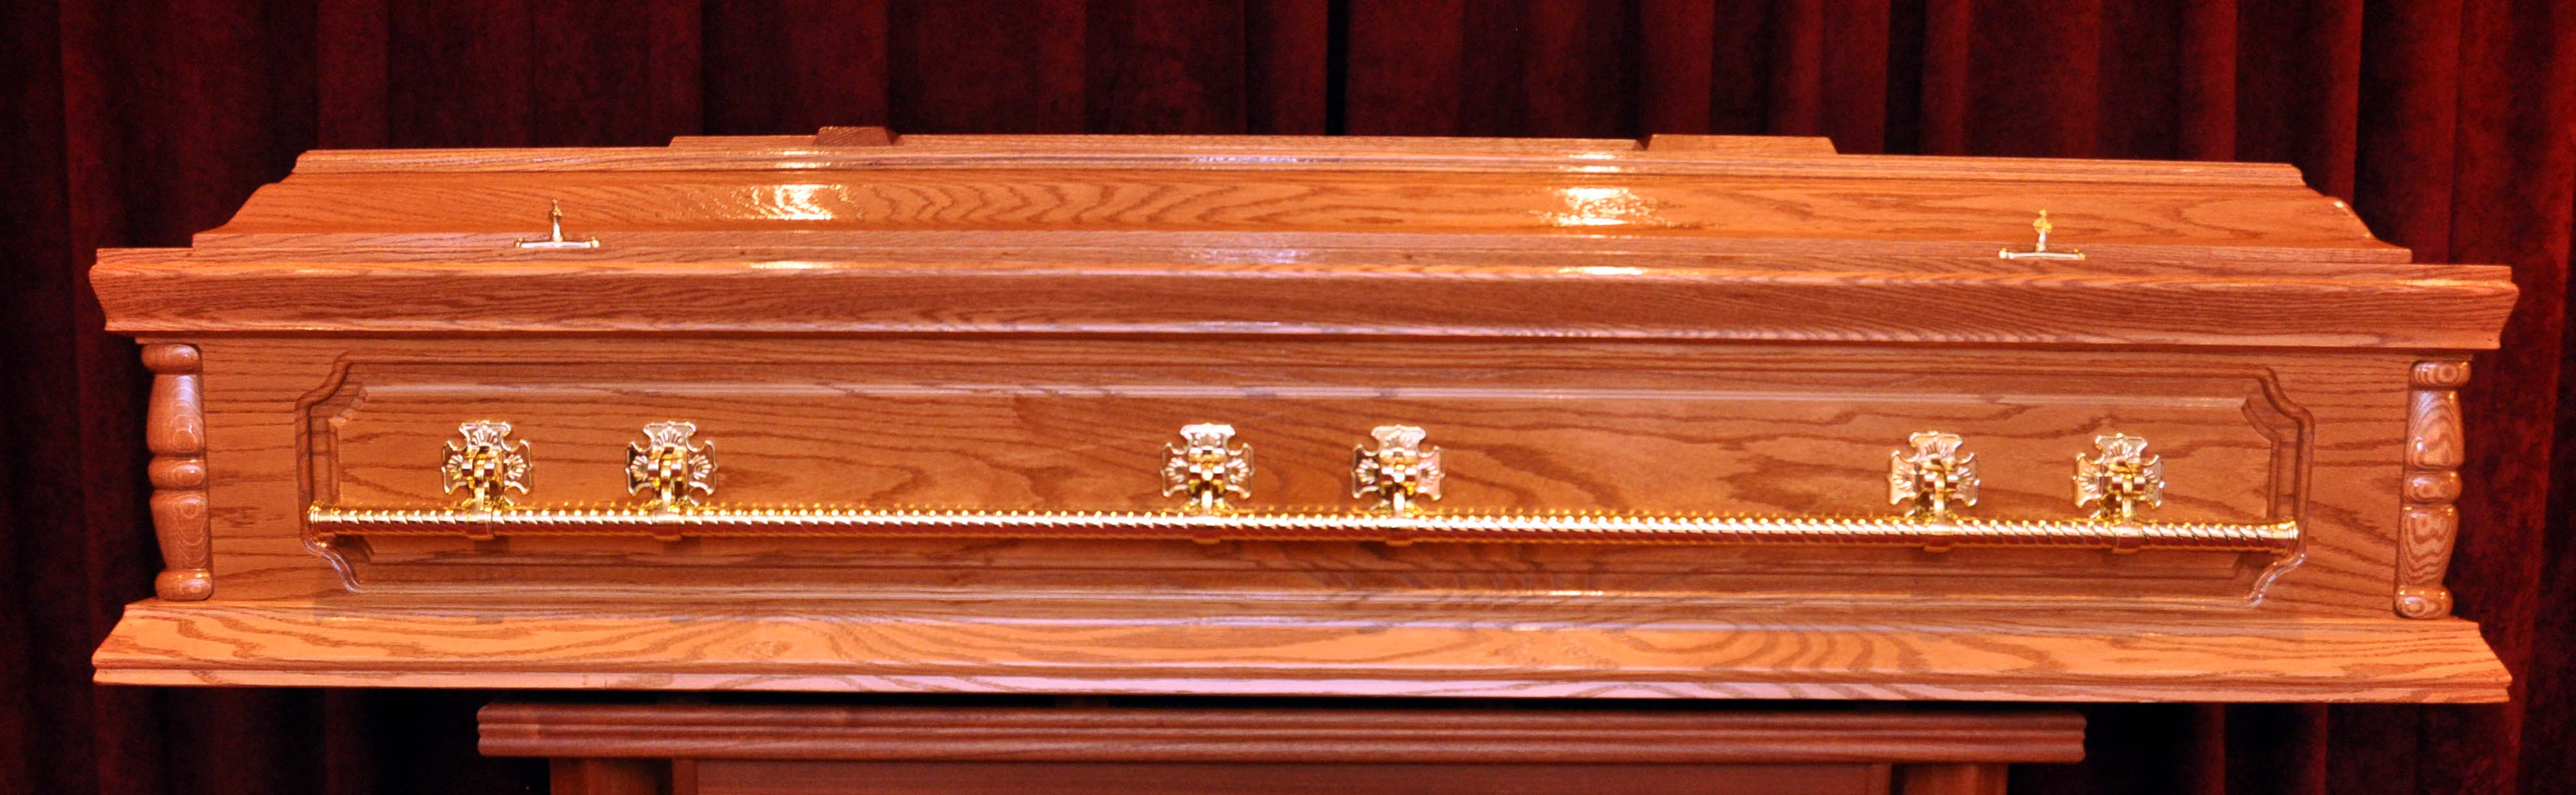 Solid oak long bar casket